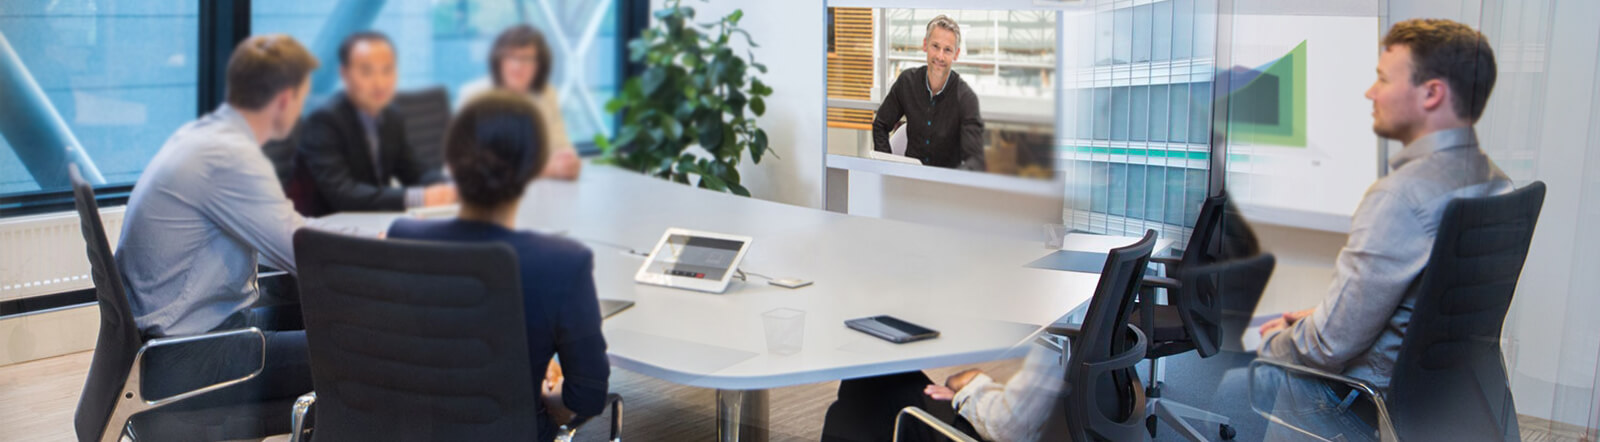 Smart video conferencing